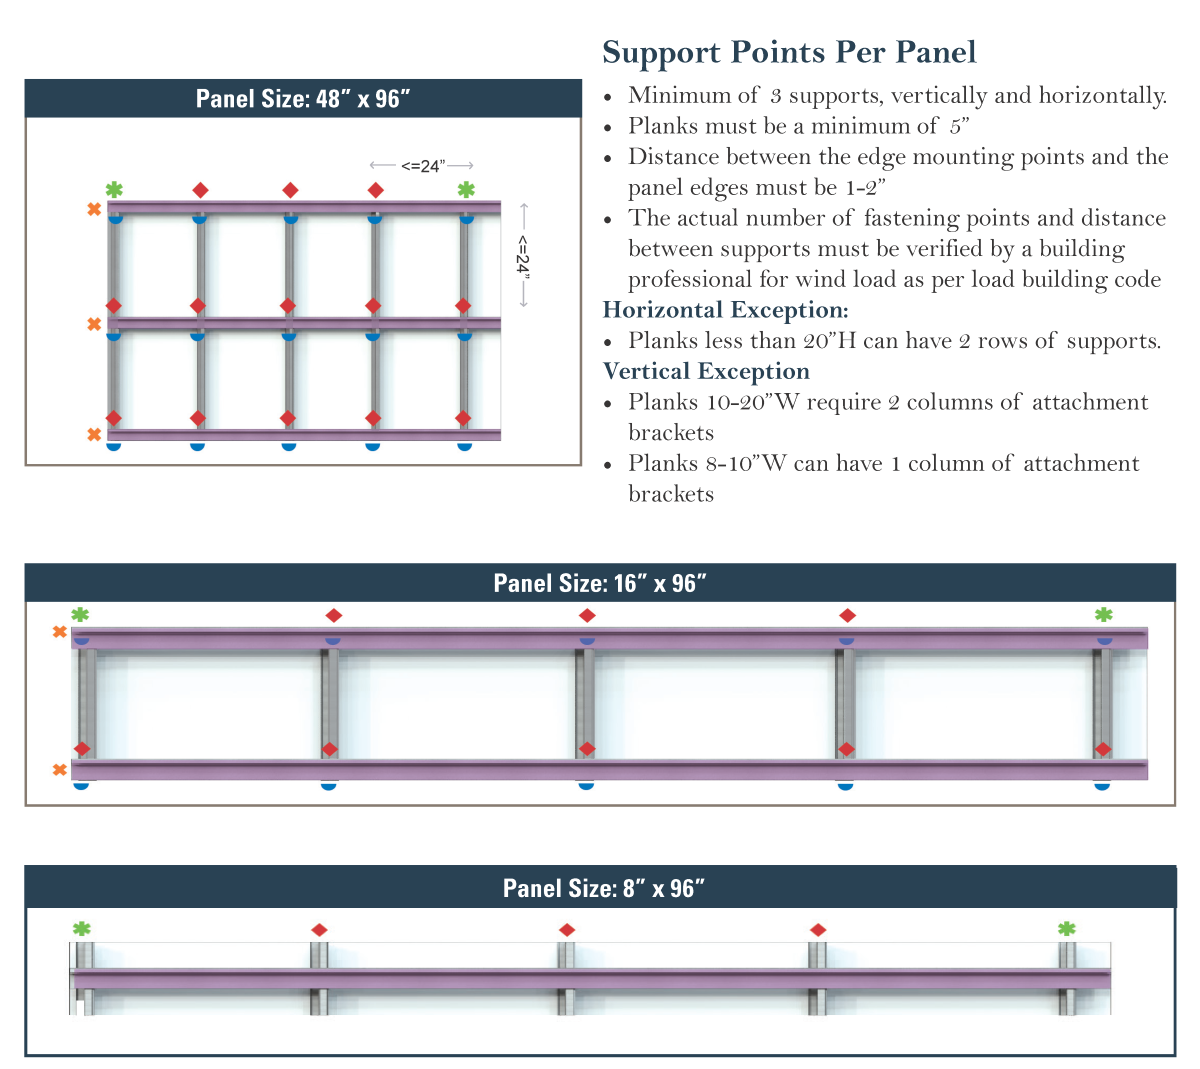 Support Points